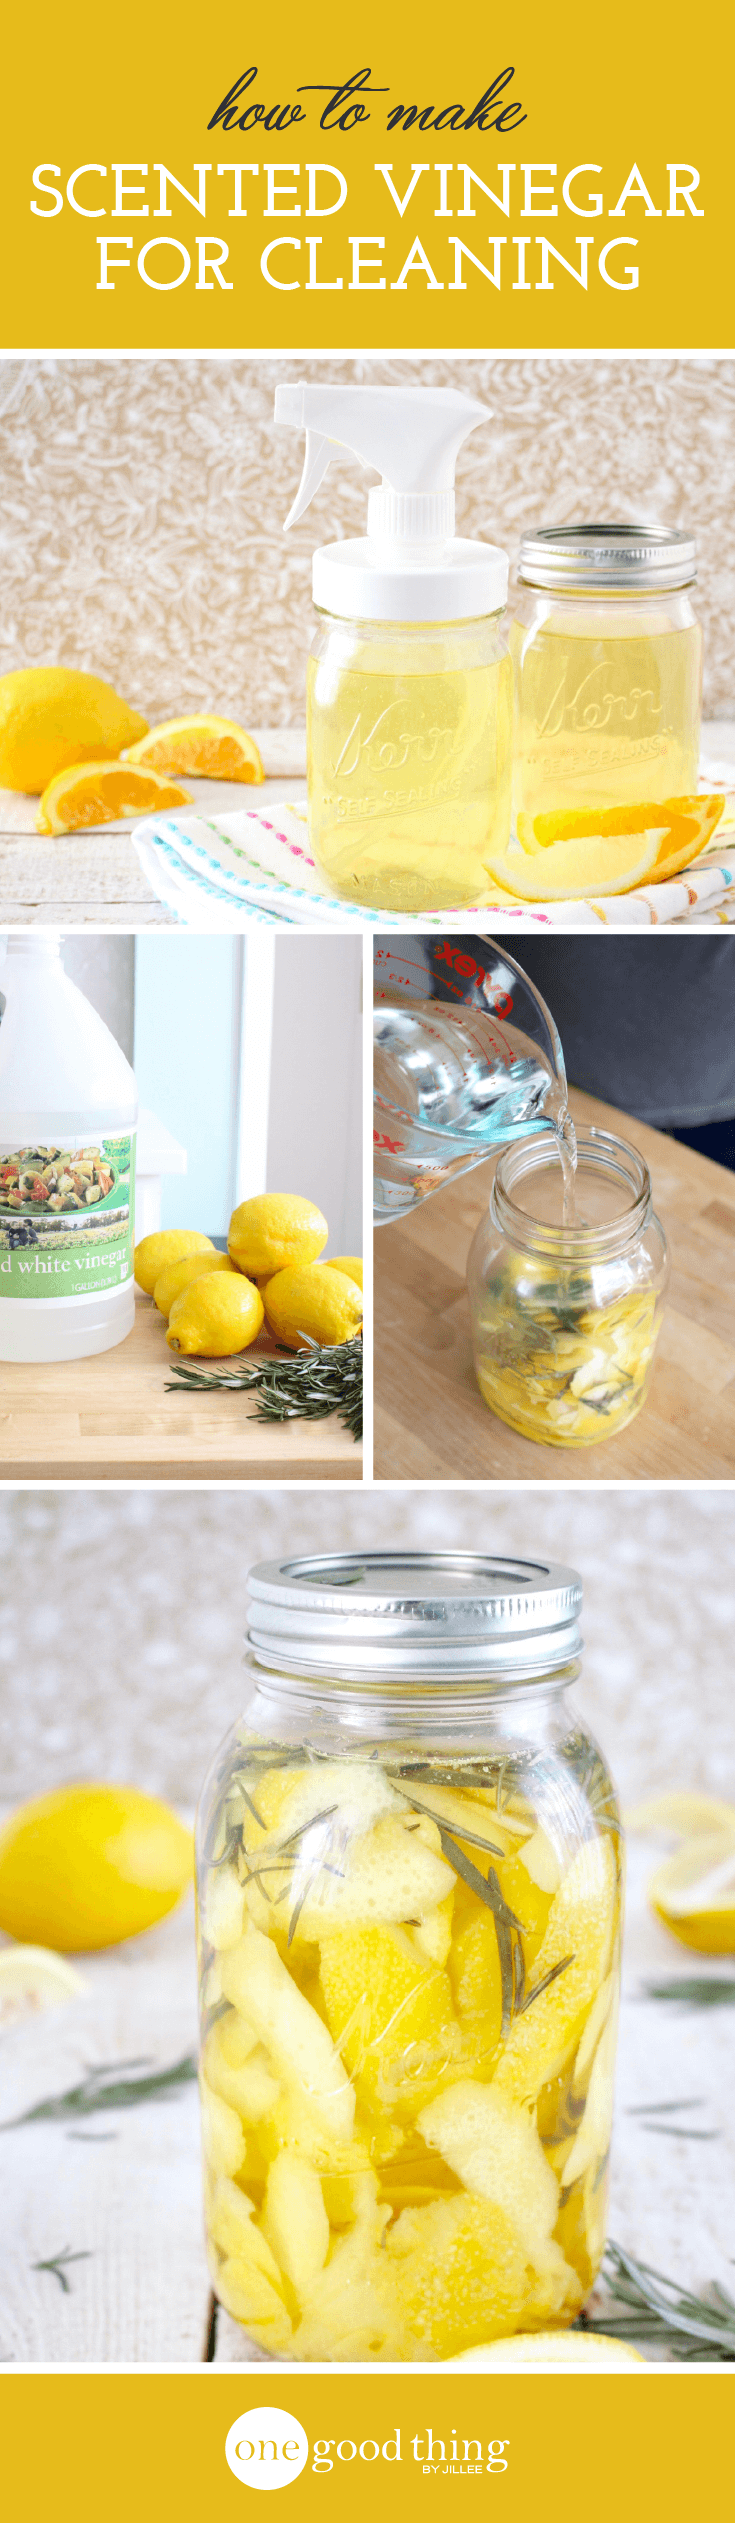 How To Make Scented Cleaning Vinegar One Good Thing By